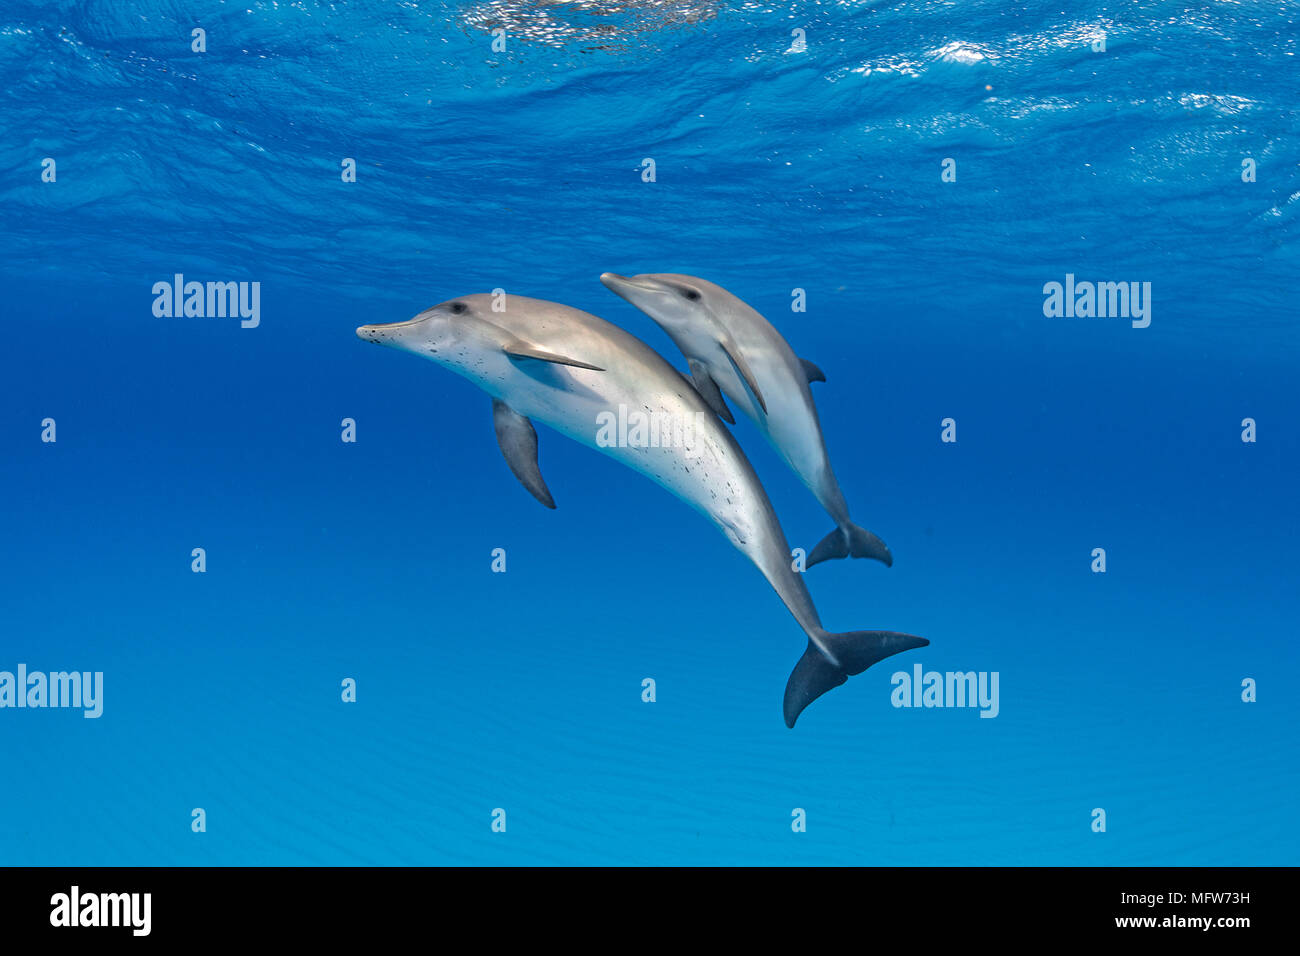 Atlantic spotted dolphin (Stenella frontalis), mother with calf, Bahama Banks, Bahamas - Stock Image